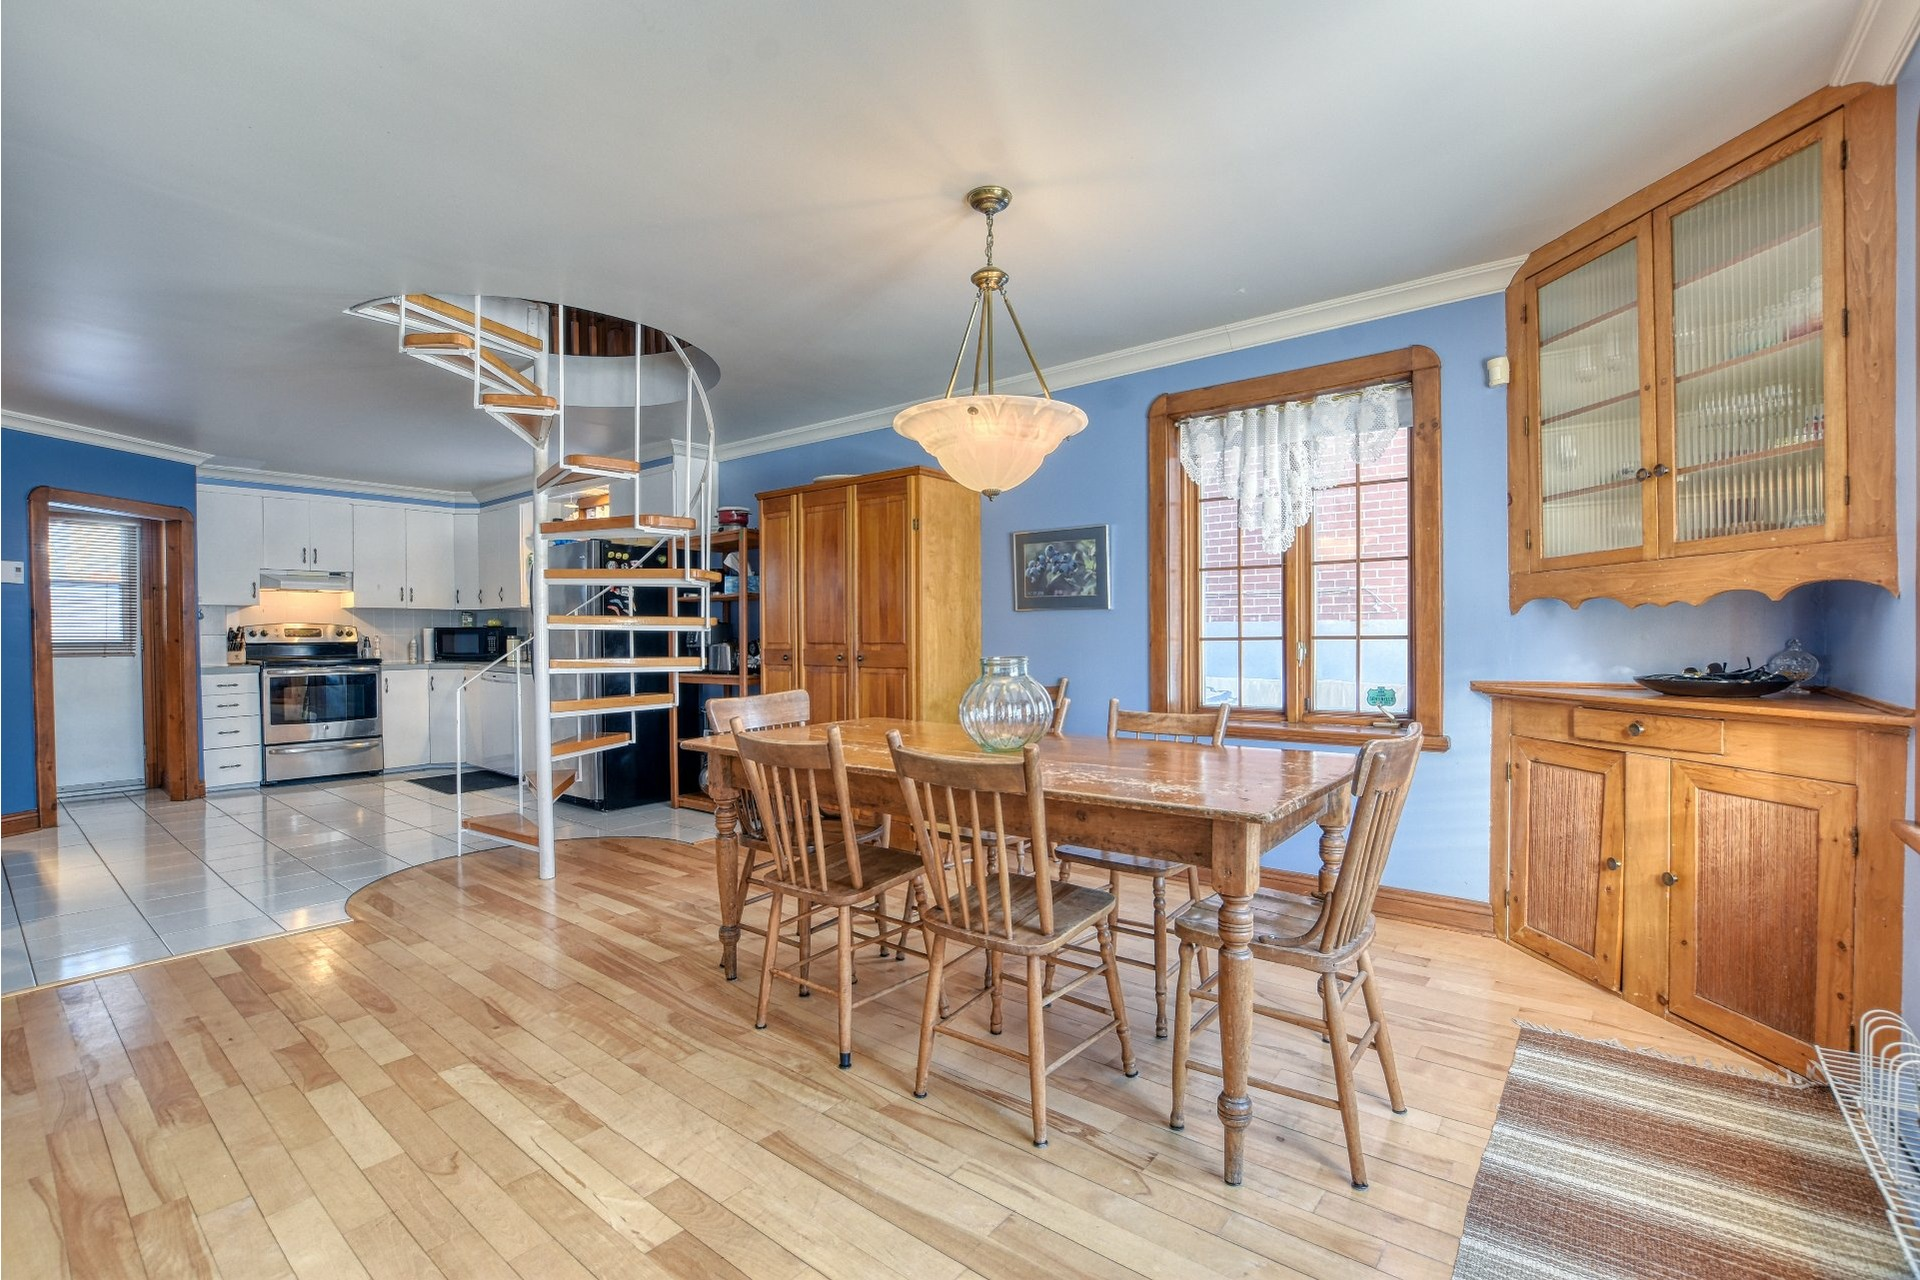 image 2 - House For sale Saint-Laurent Montréal  - 10 rooms